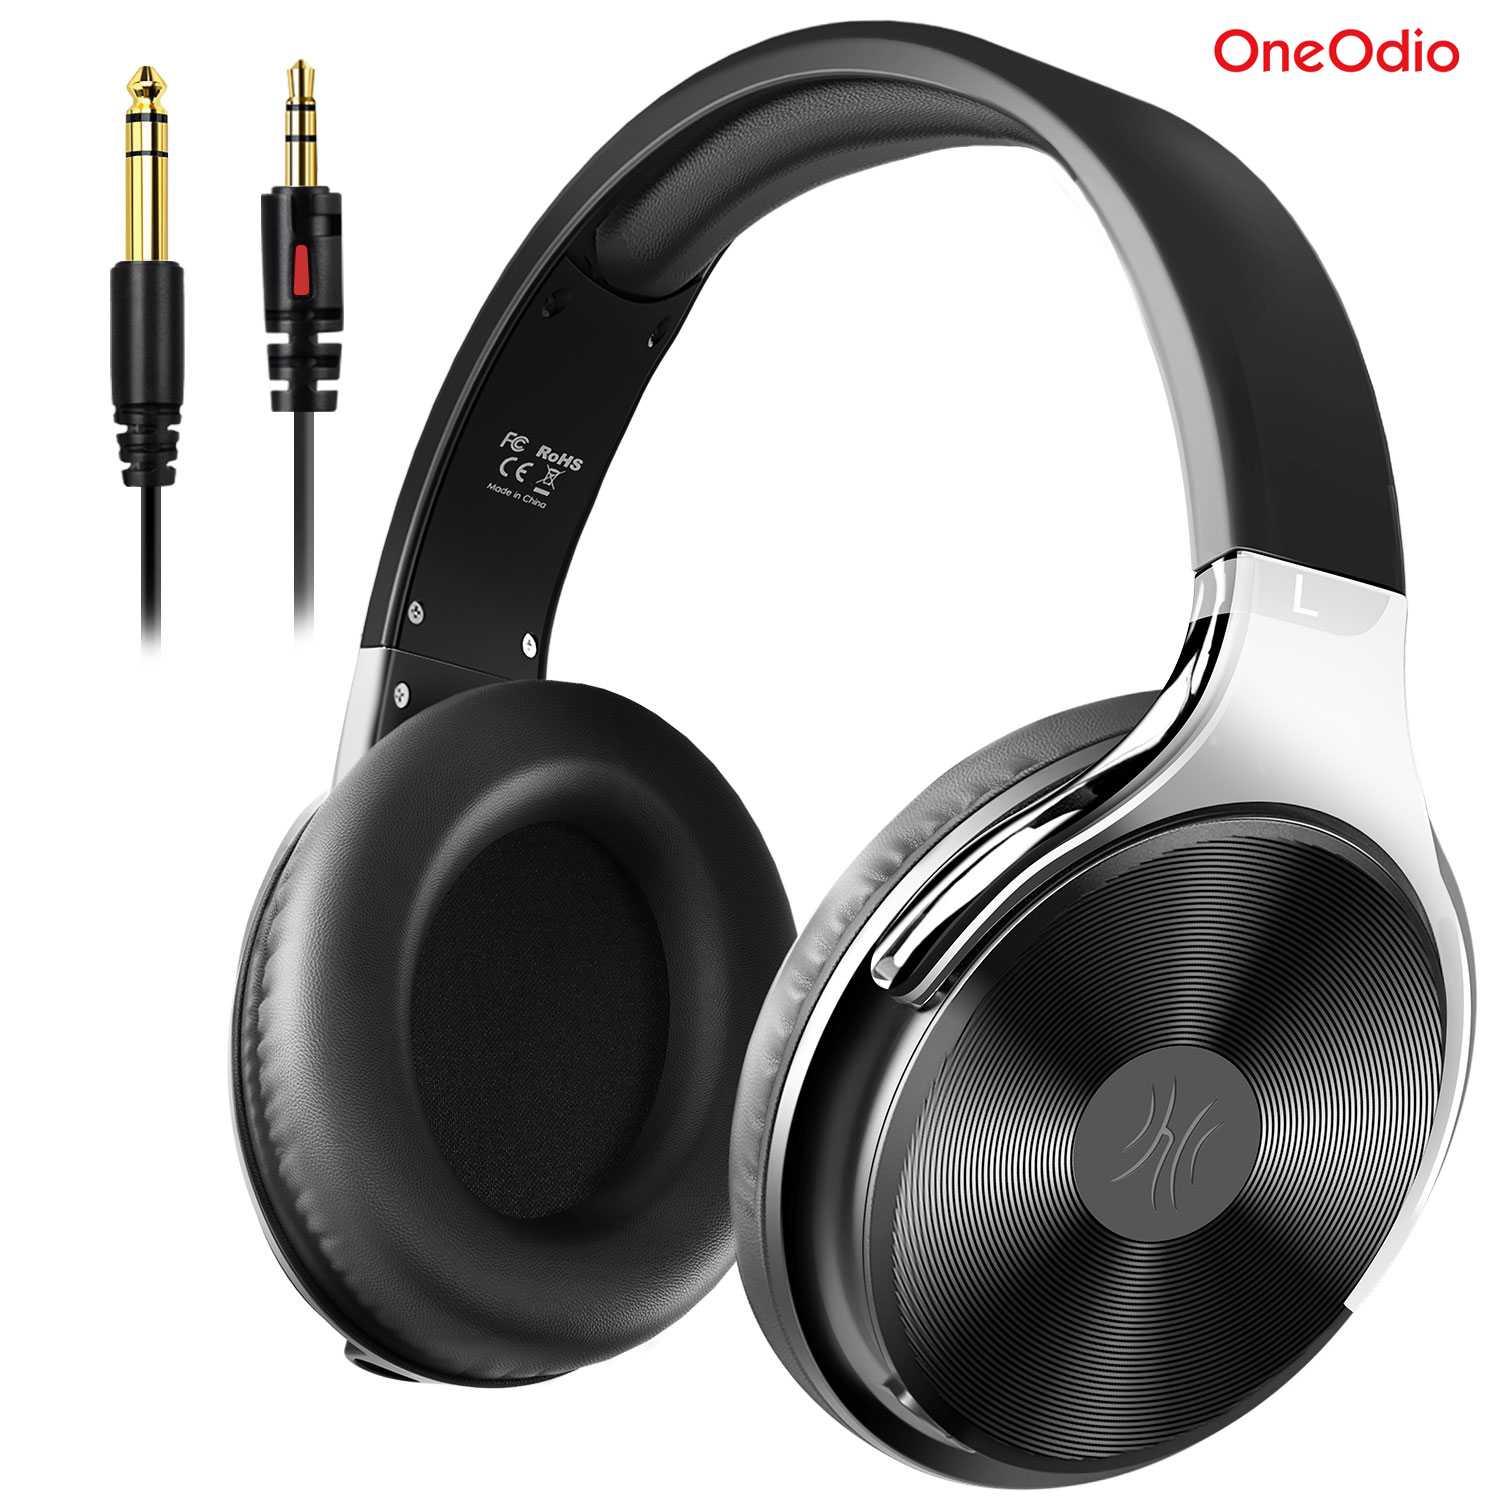 Oneodio Studio HI-FI Headphones High Definition Sound Over Ear Wired Headset With Mic Closed-Back HIFI Headphone 3.5/6.35 Jack image